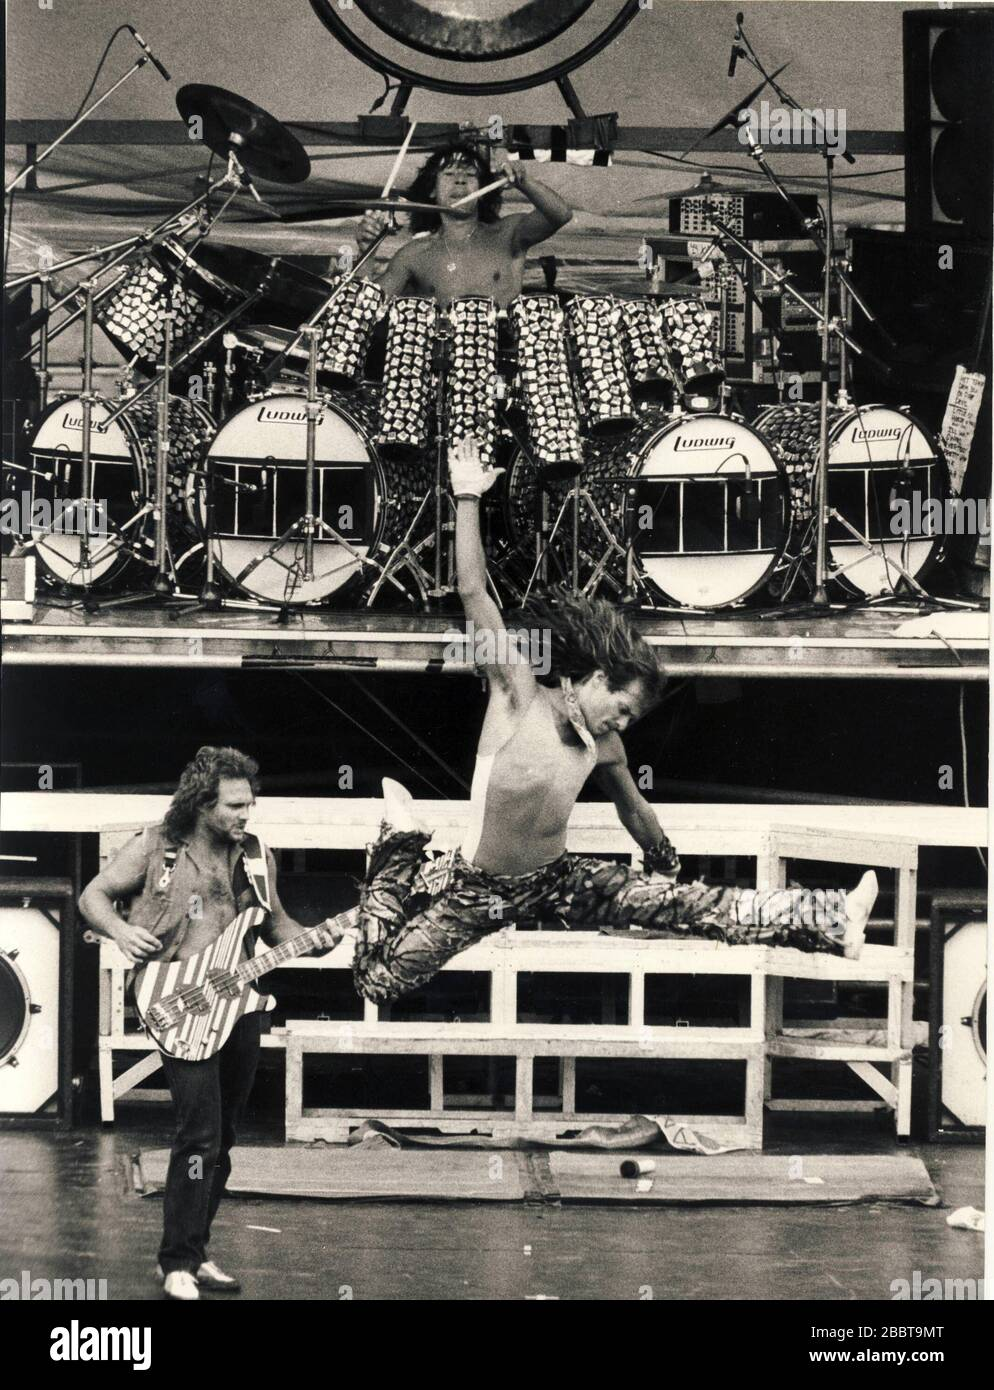 Van Halen Live In Stockholm August 25th 1984 Monsters Of Rock Outdoor At The Rasunda Football Stadium In The Afternoon Stock Photo Alamy